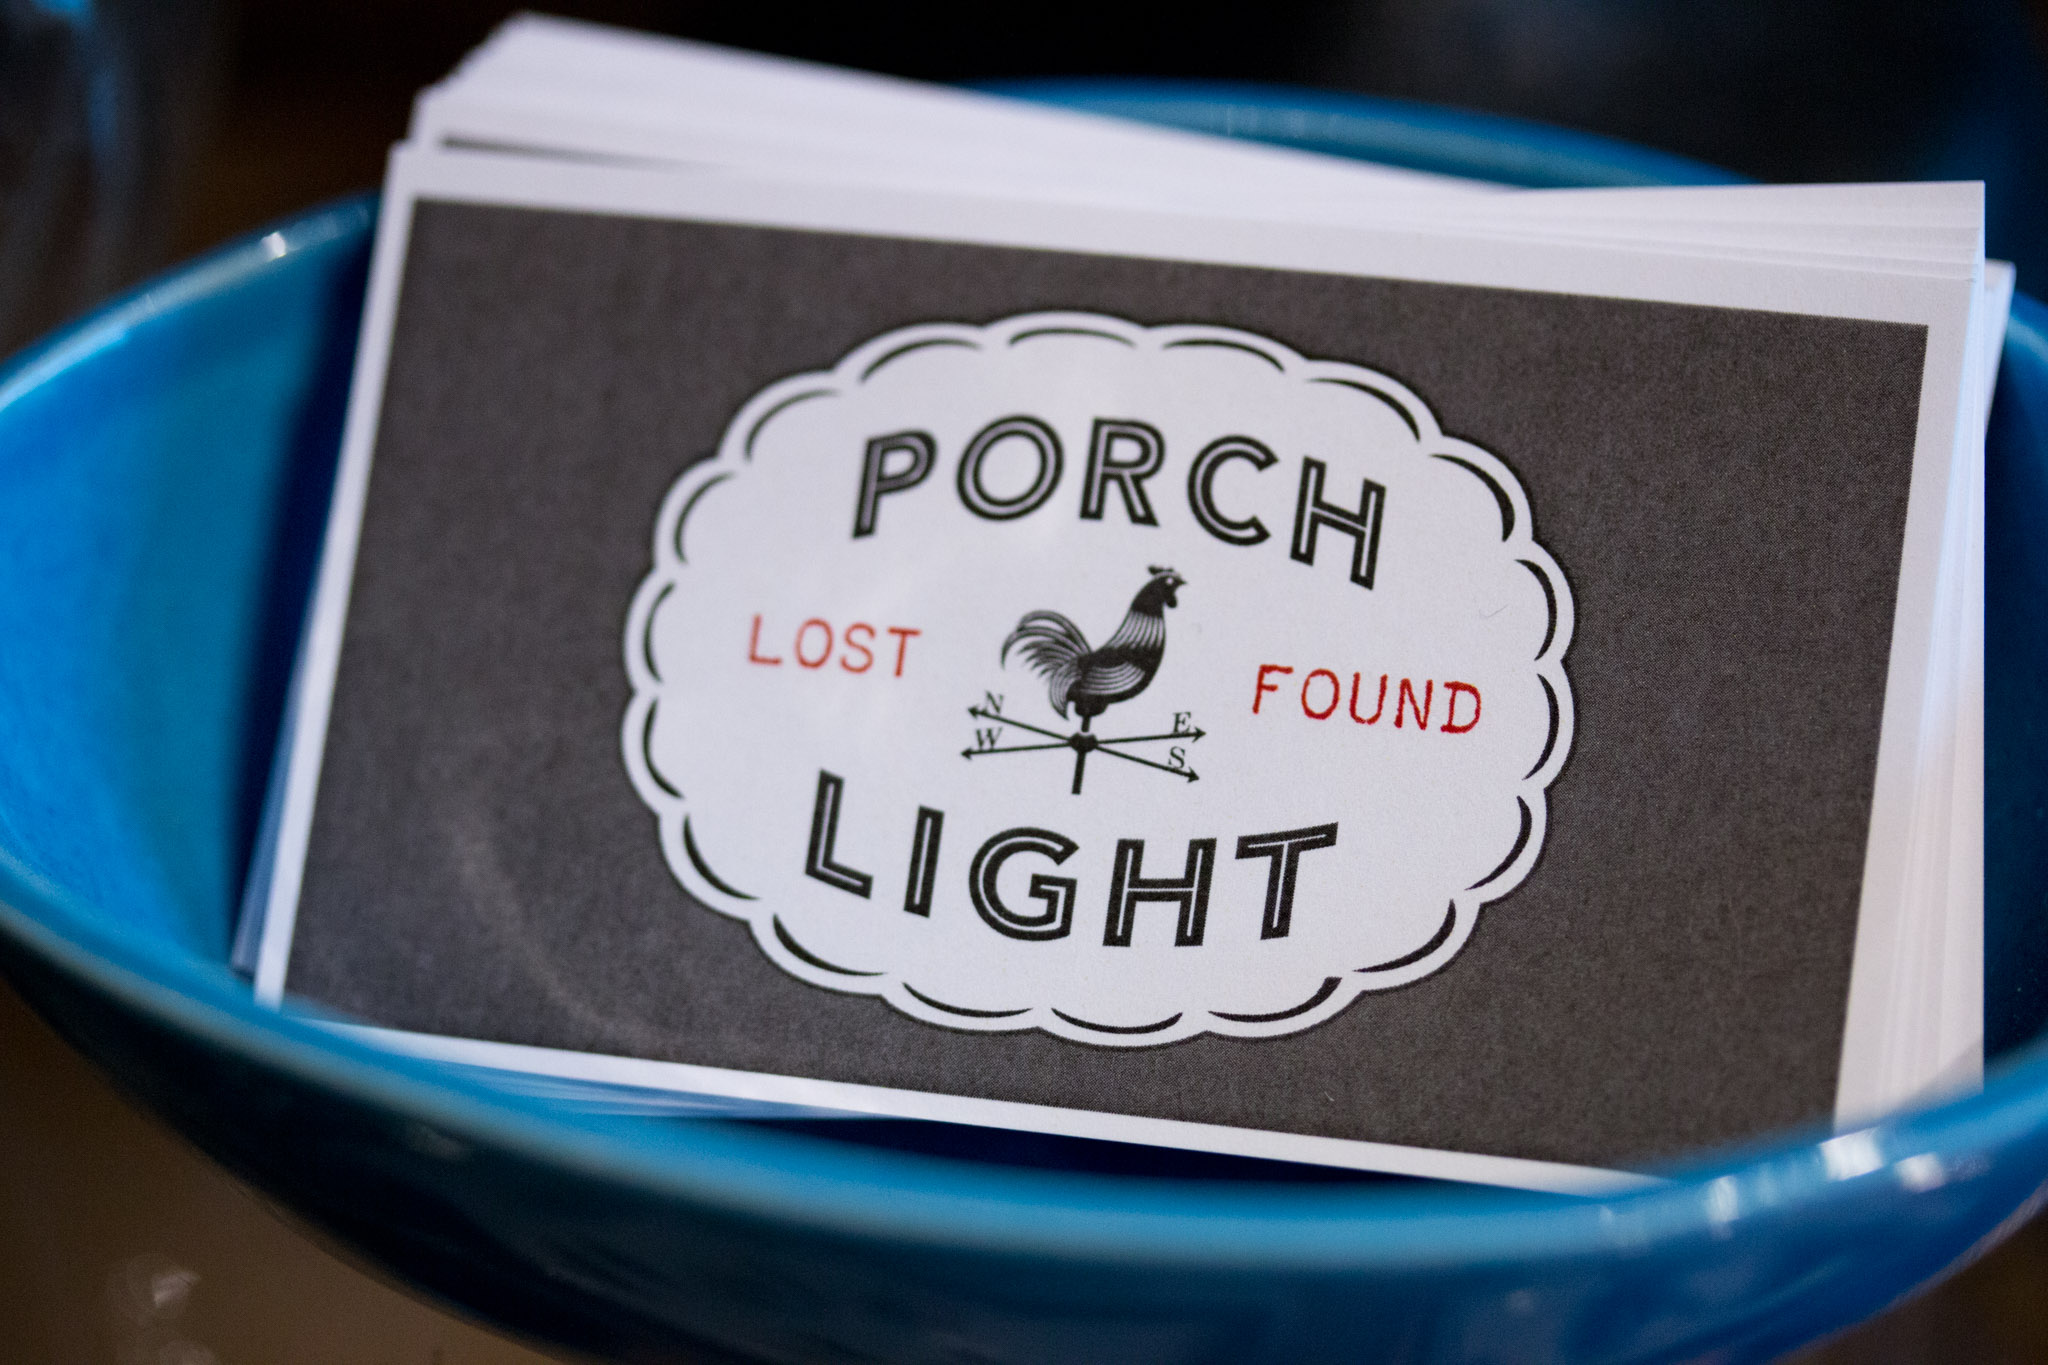 Porch Light Lost Found Logo Business Cards in Portland, OR - Porch Light